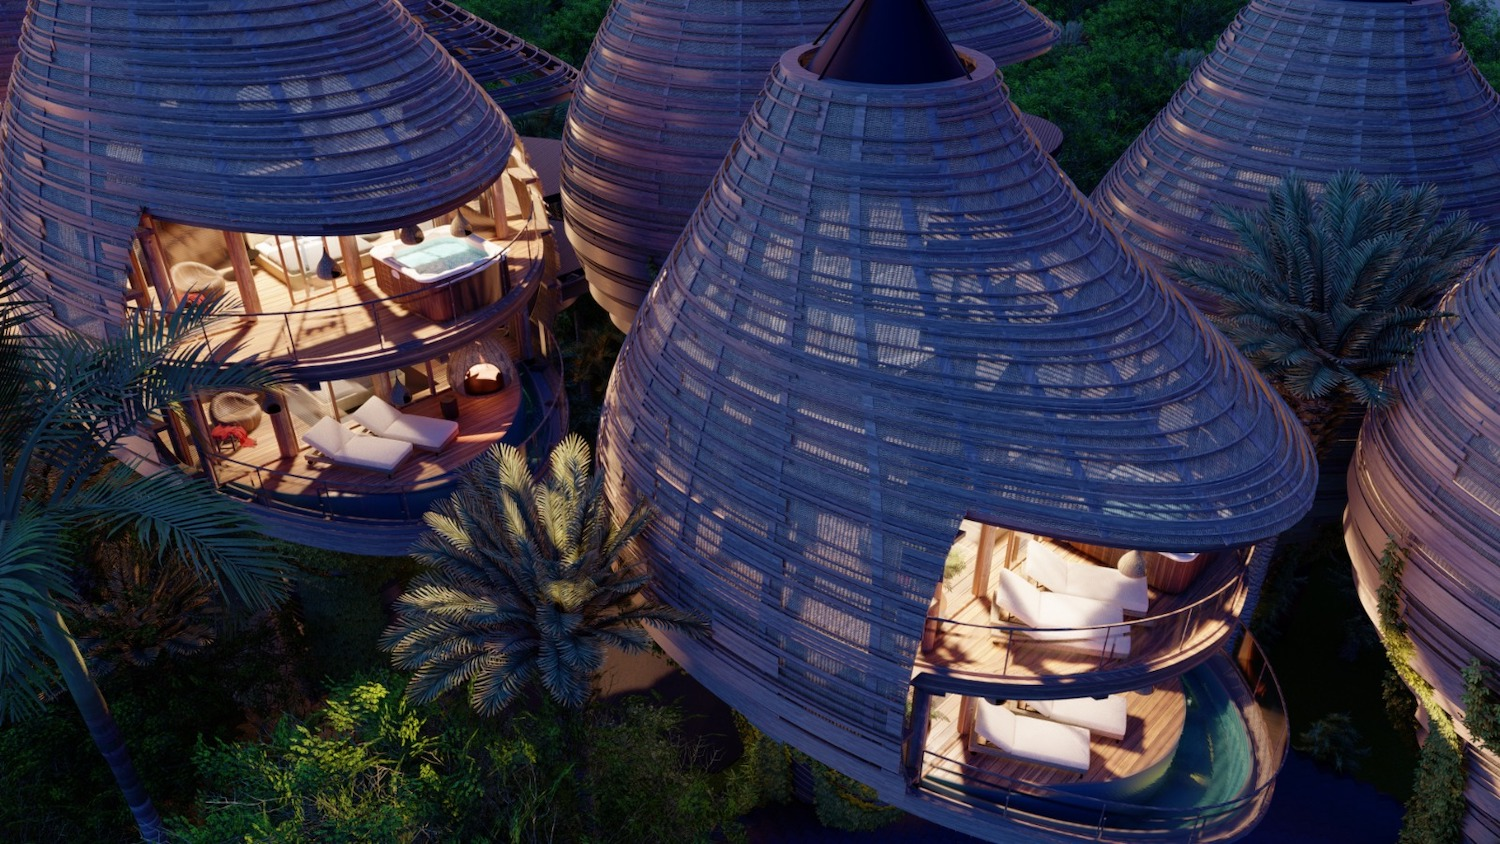 EL NIDO Boutique Hotel in Tulum, Mexico by DNA Barcelona Architects